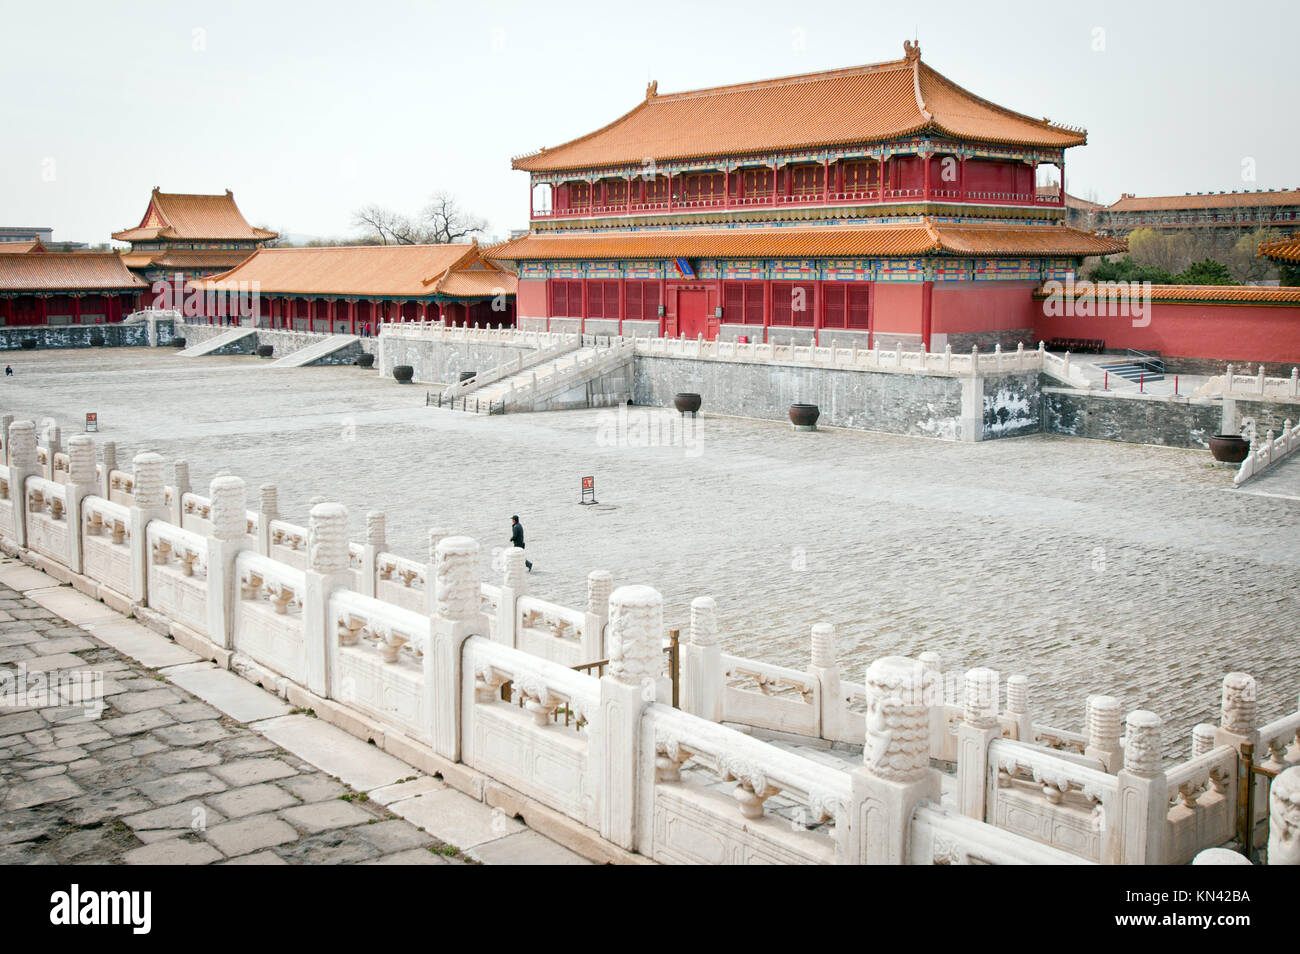 Hall of Enhanced Righteousness (Hongyi Pavilion) in Forbidden City, Beijing, China. - Stock Image